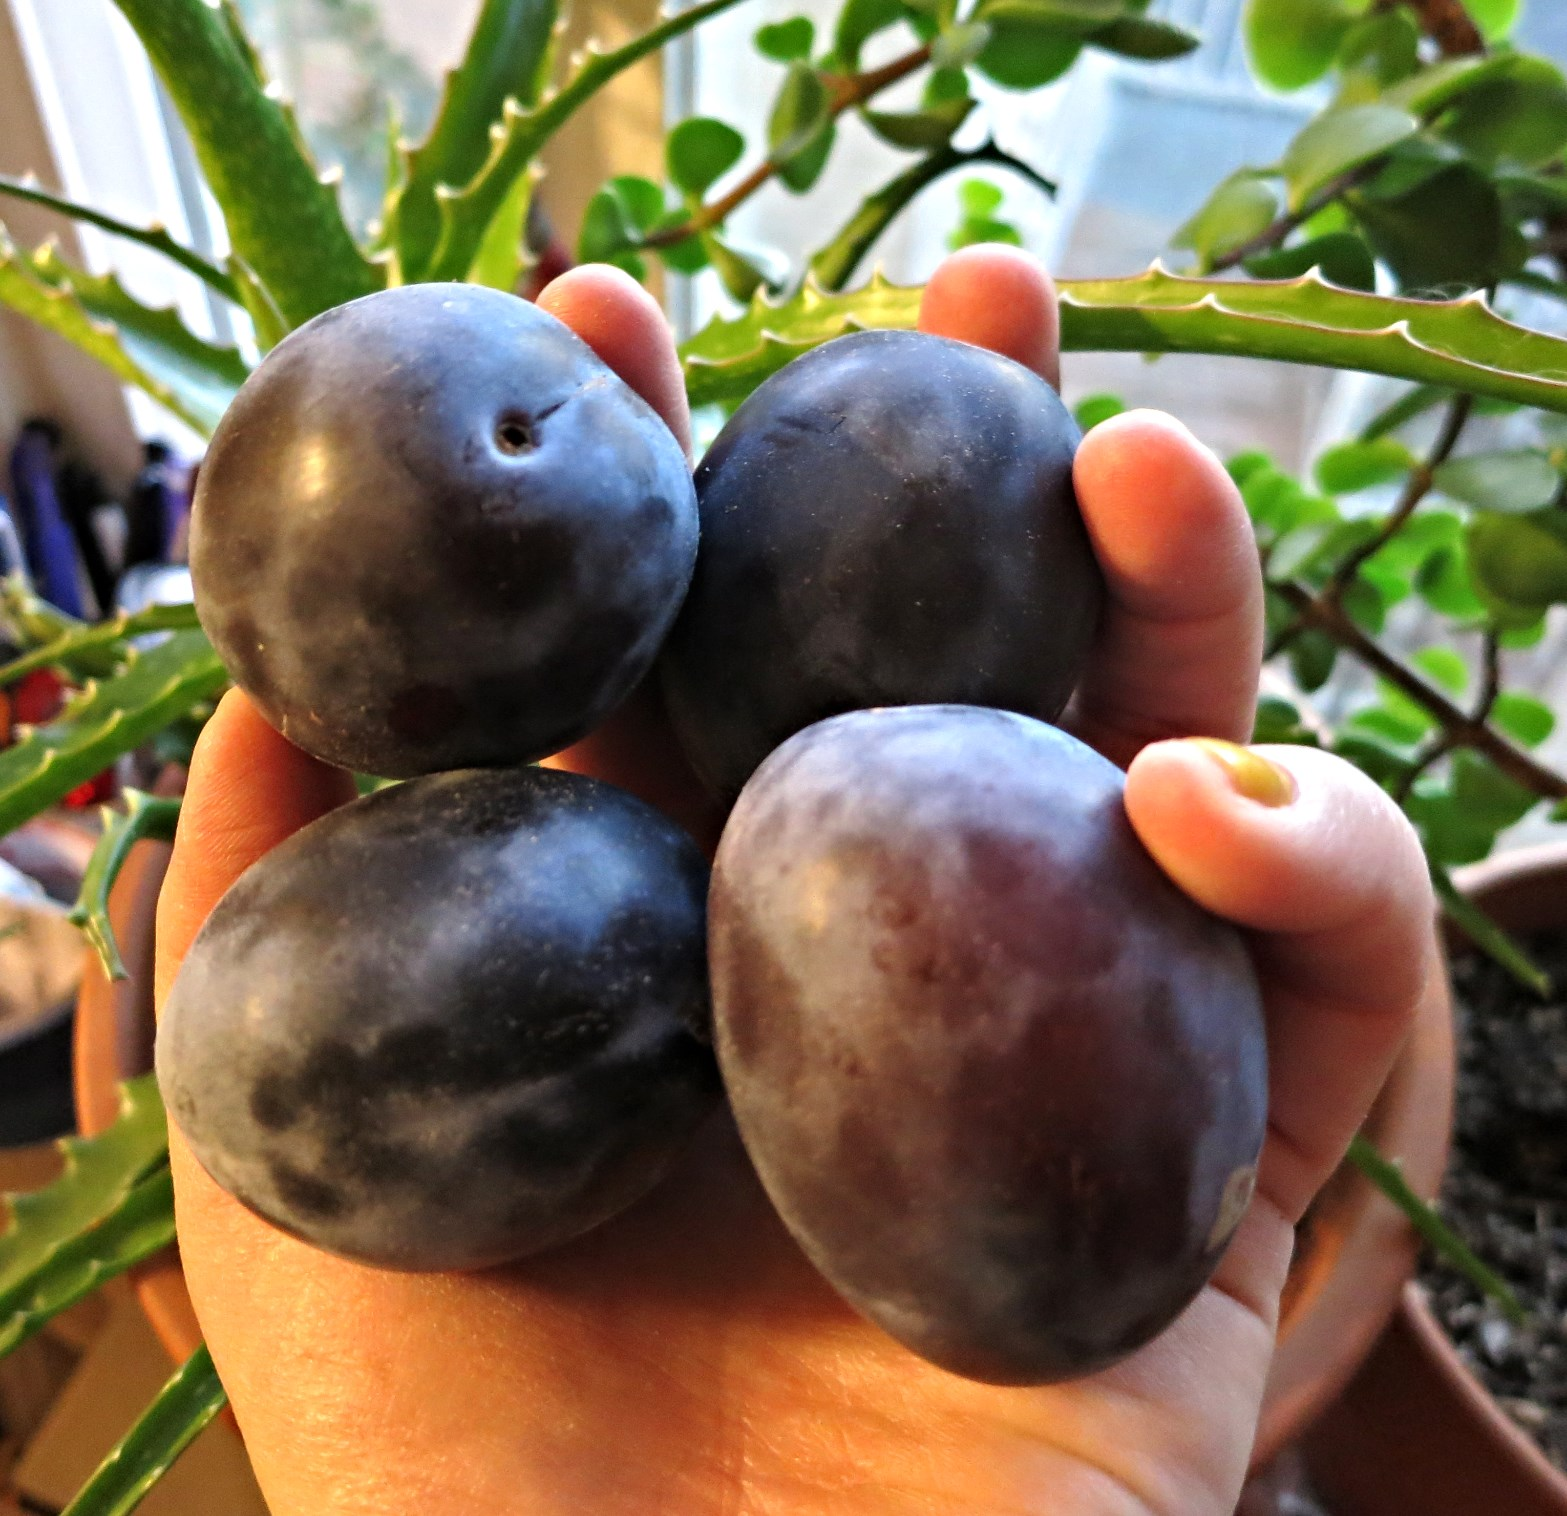 Fresh prune plums! Image source: my hand.